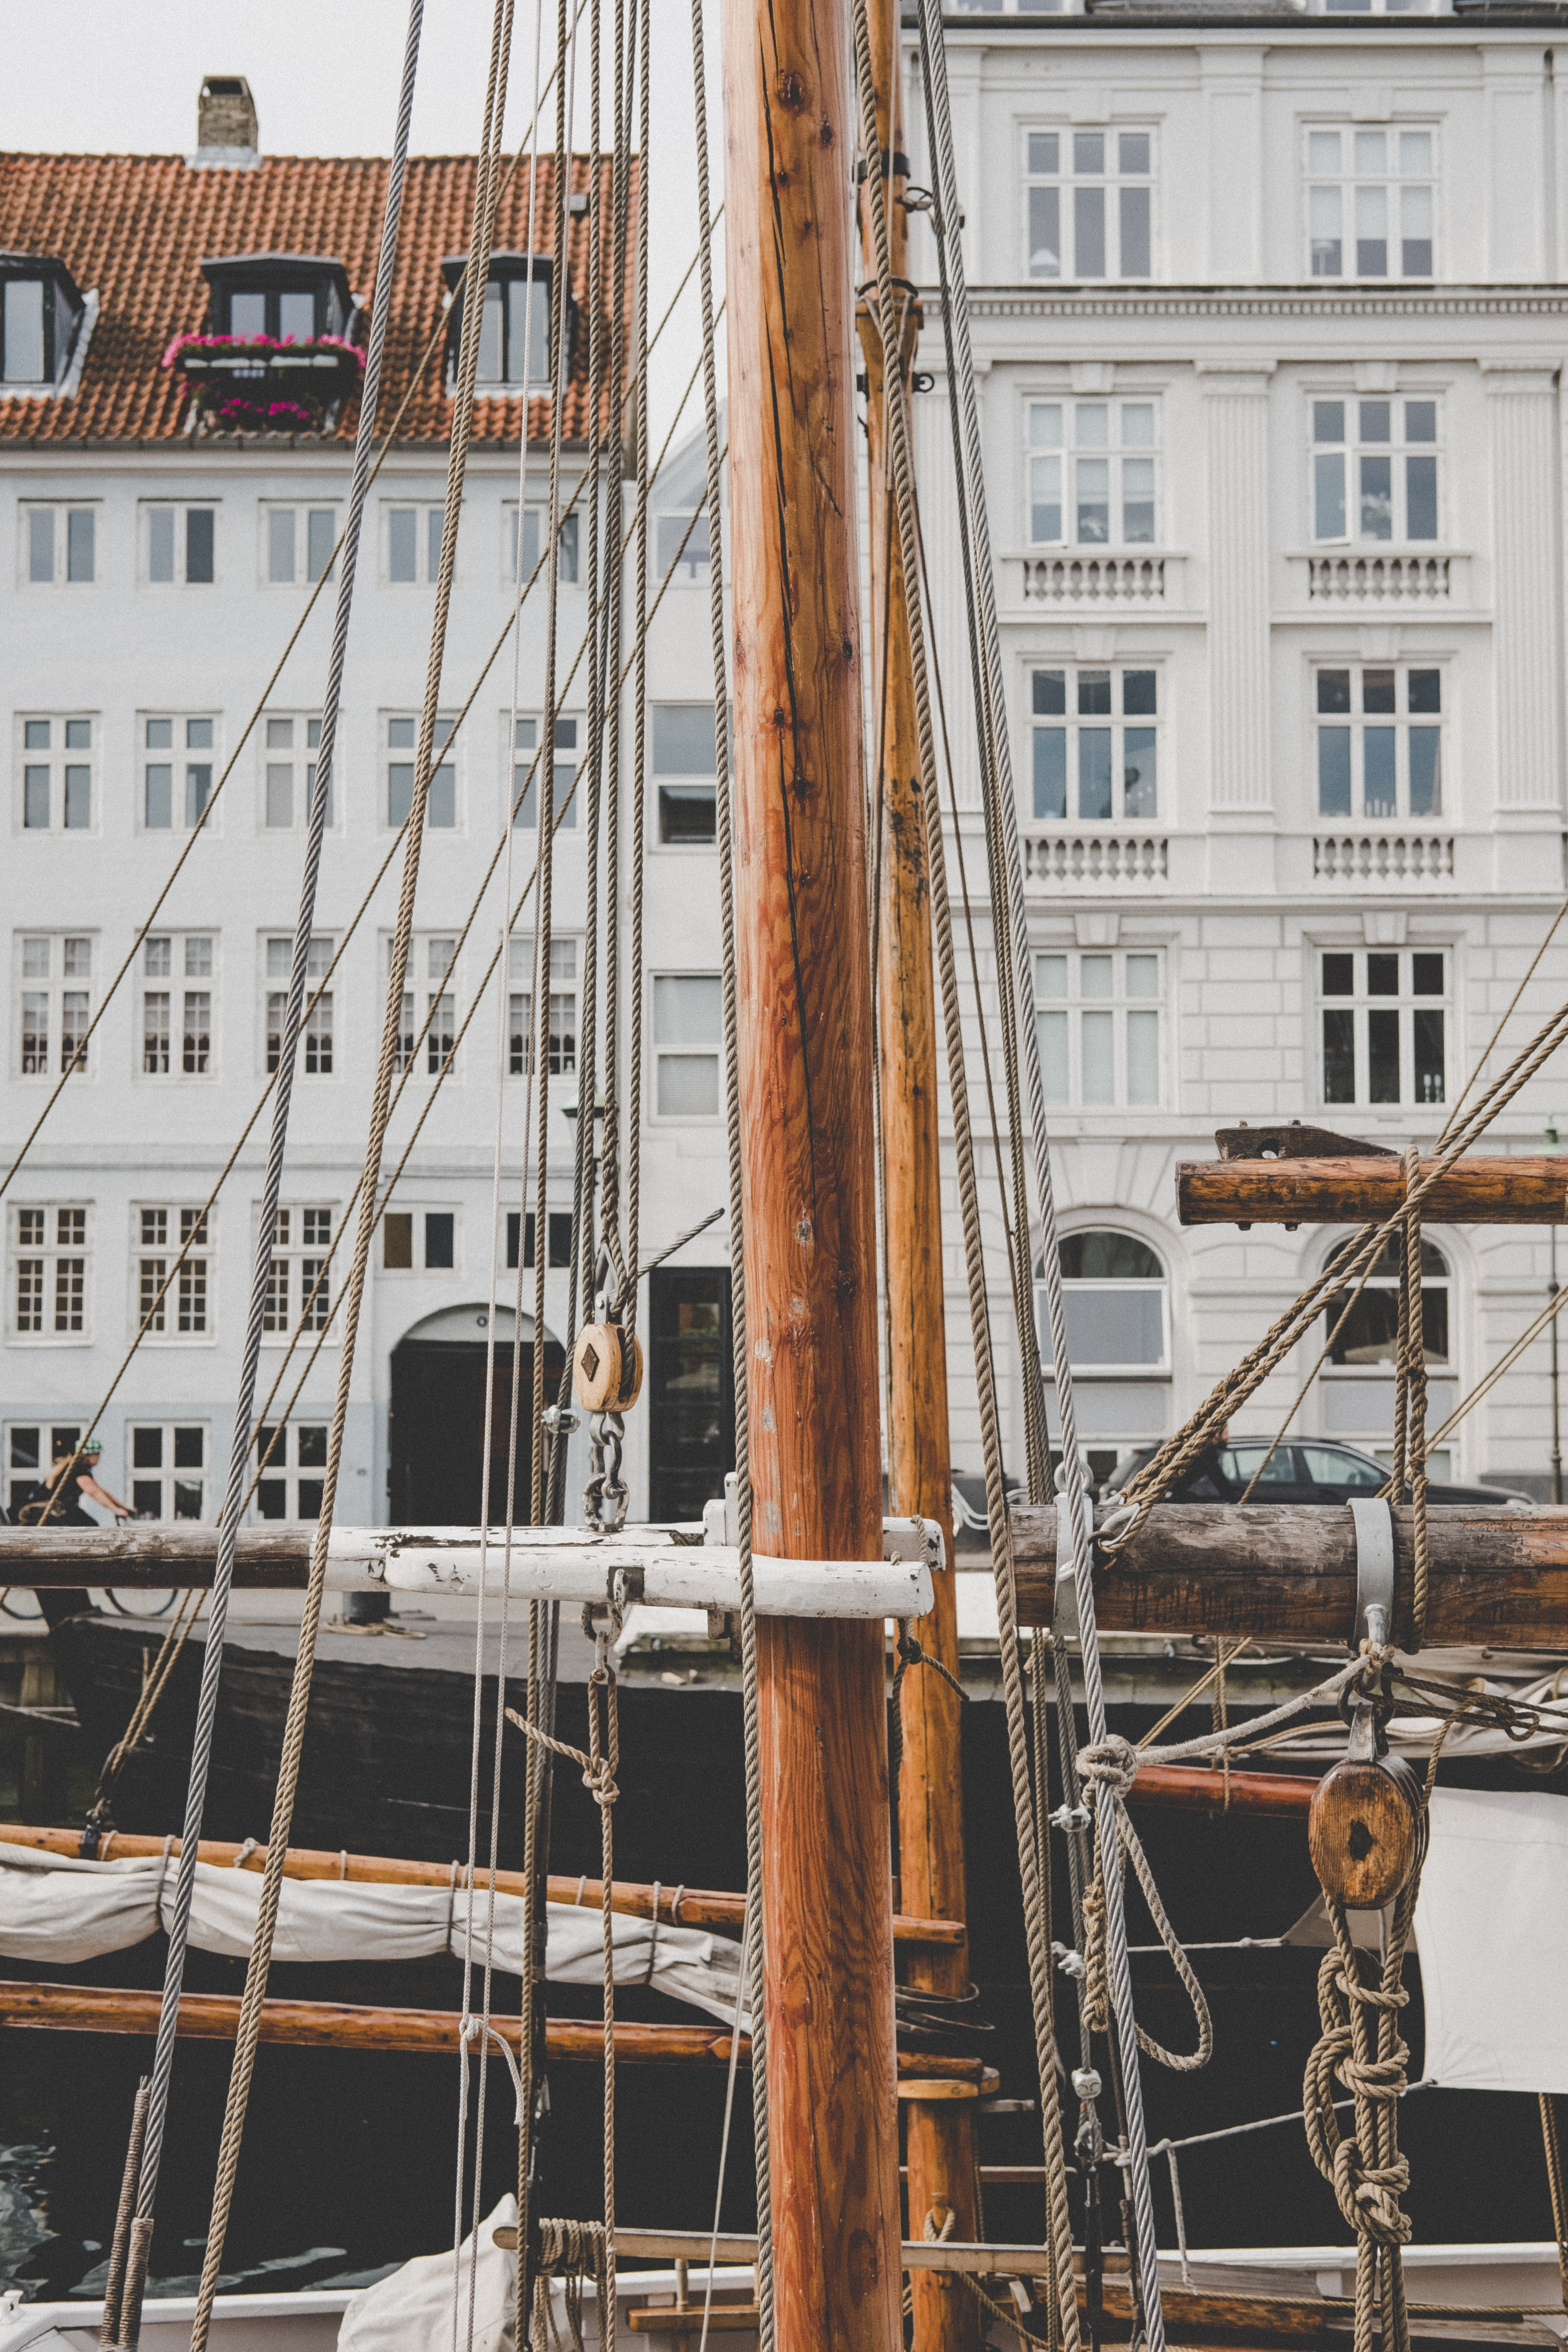 close-up photo of brown and white sailboat